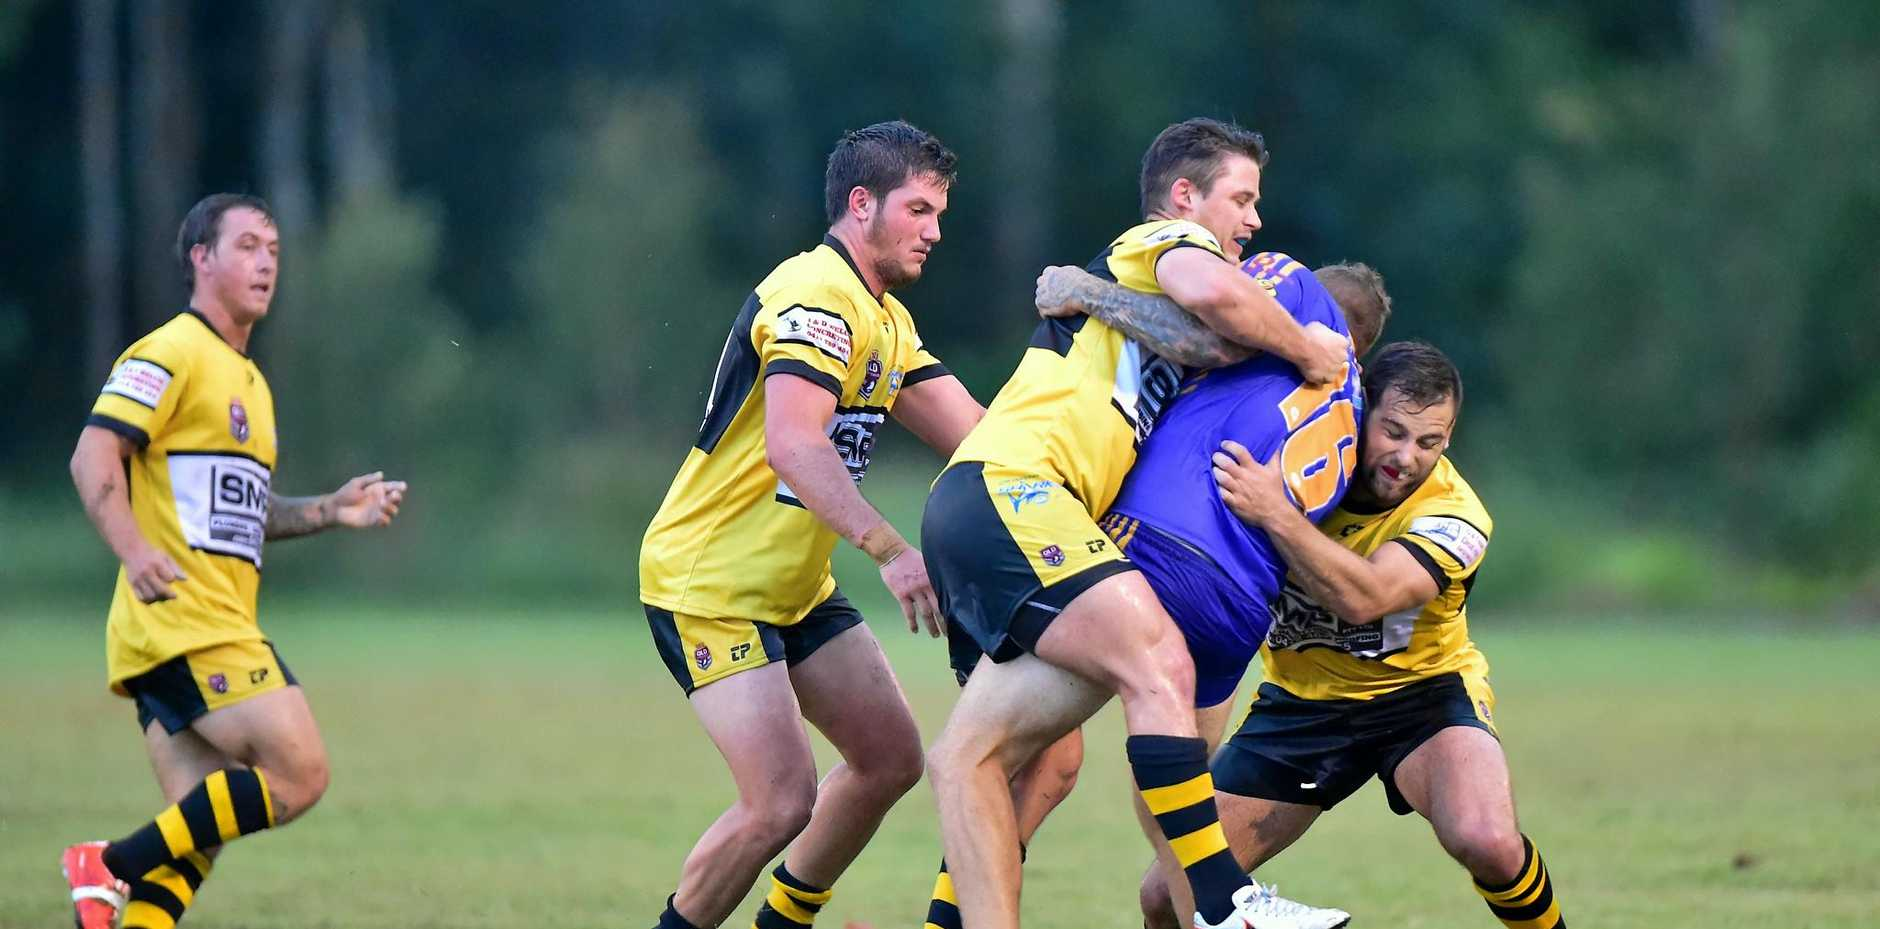 DIDN'T HAPPEN: A match between Noosa and Caloundra last year. They were due to collide on Saturday but the Pirates could not field a competitive team.